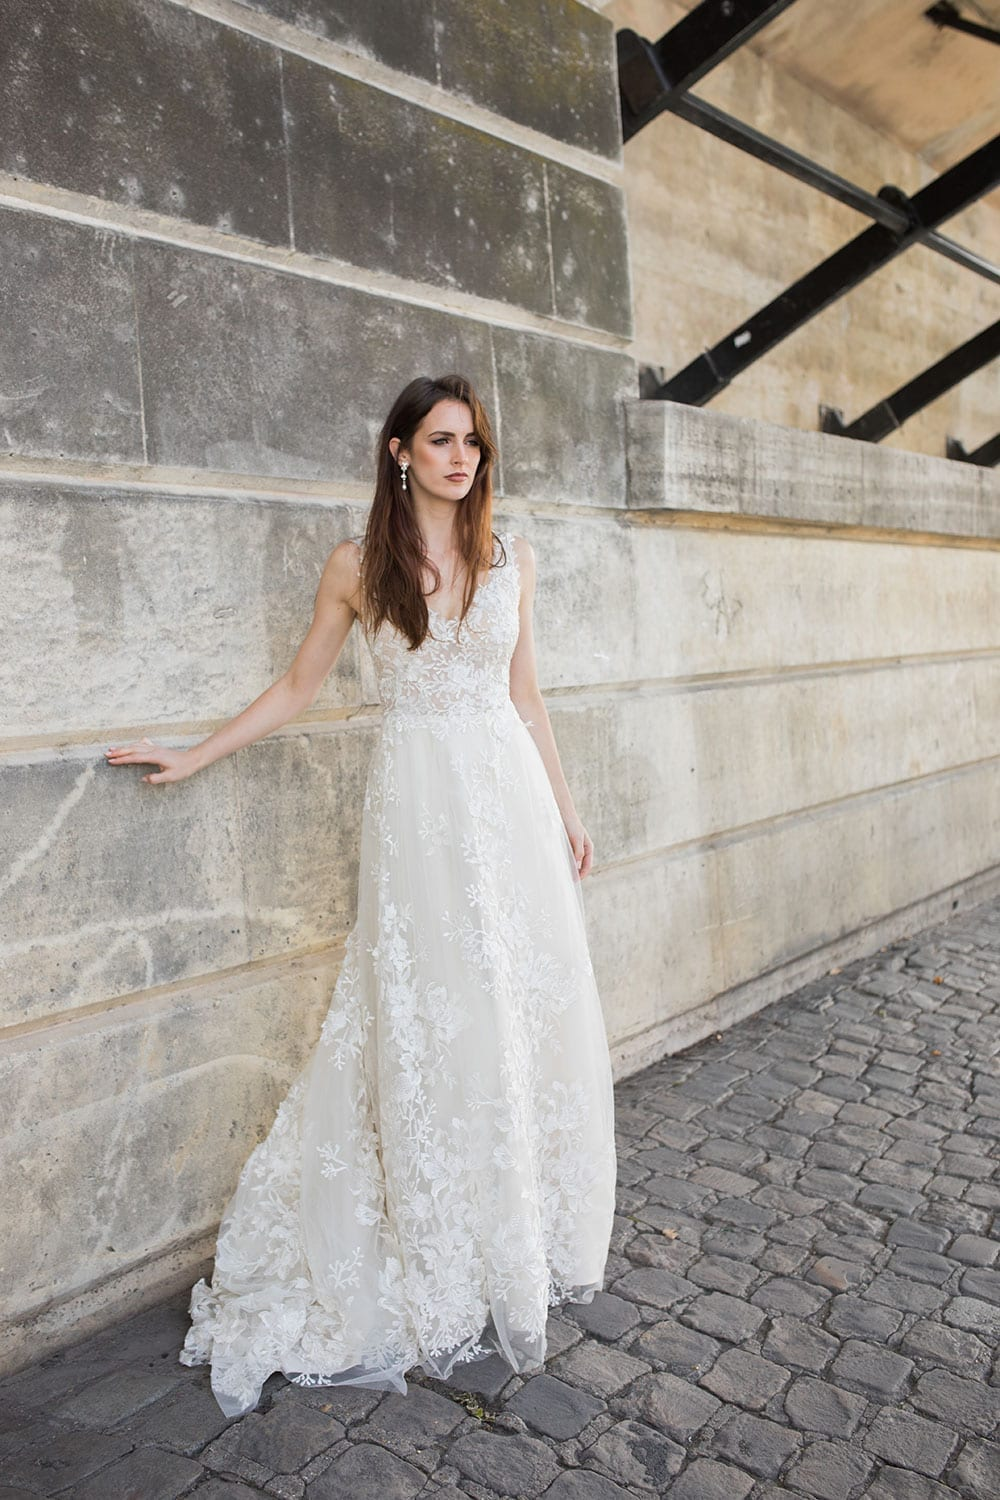 Model wearing Vinka Design Delta Wedding Dress, a Romantic v-neck wedding dress with a soft silhouette of layers of tulle & delicate 3D lace and sheer bodice on Parisian path